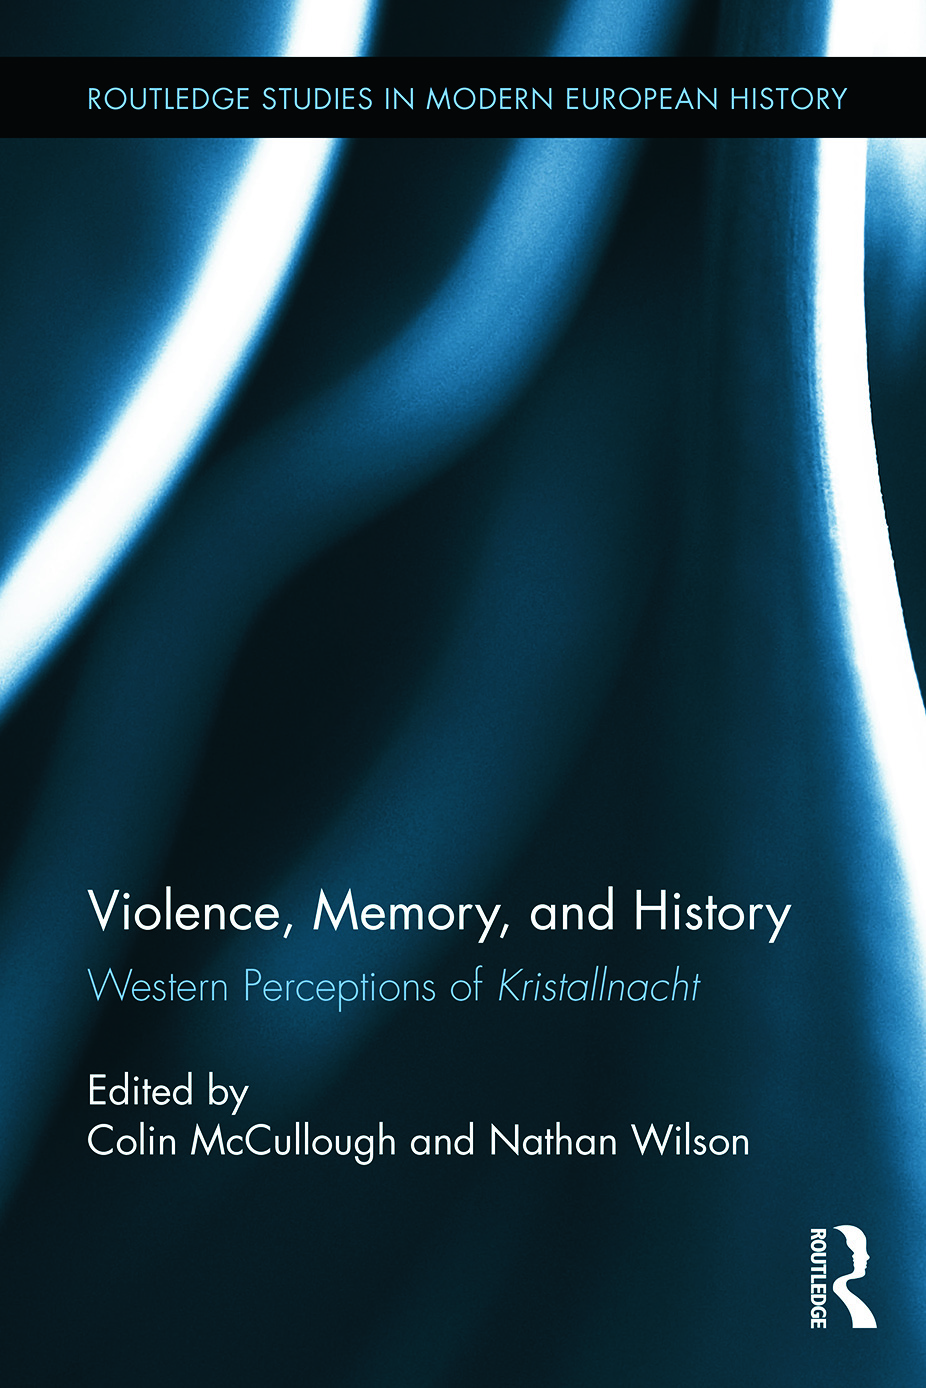 Violence, Memory, and History: Western Perceptions of Kristallnacht book cover